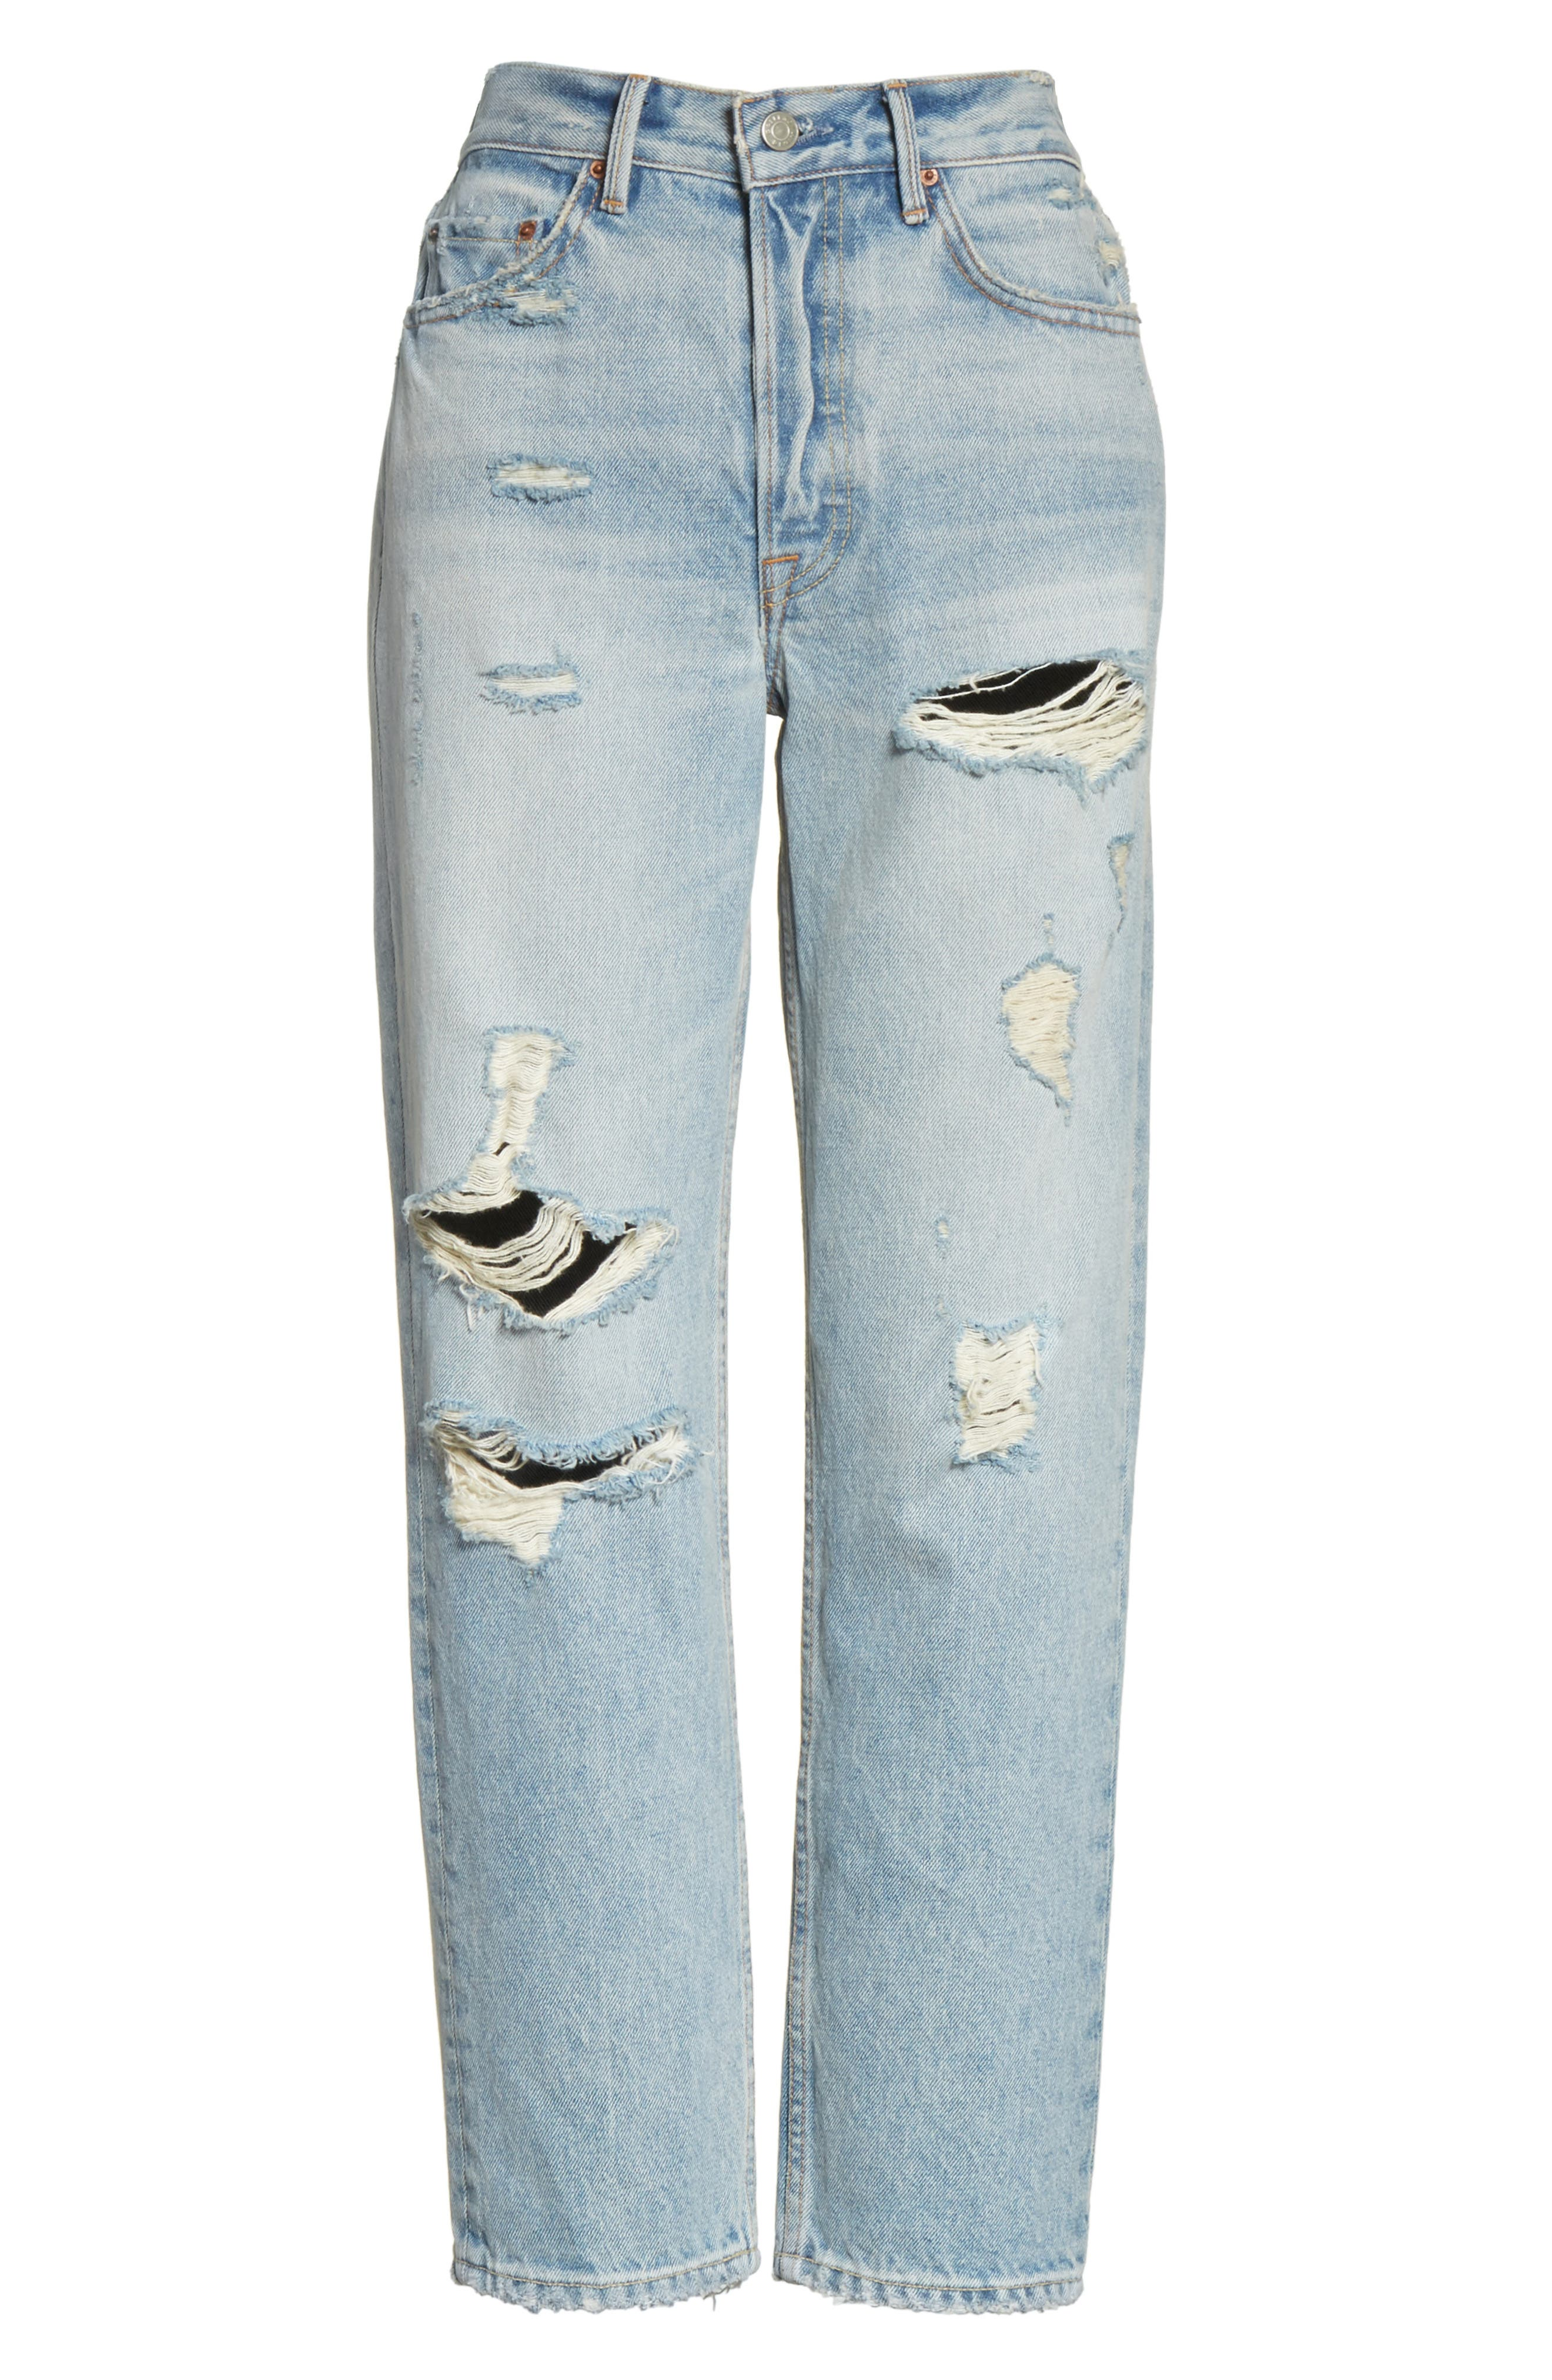 Helena Ripped Rigid High Waist Straight Jeans,                             Alternate thumbnail 6, color,                             491